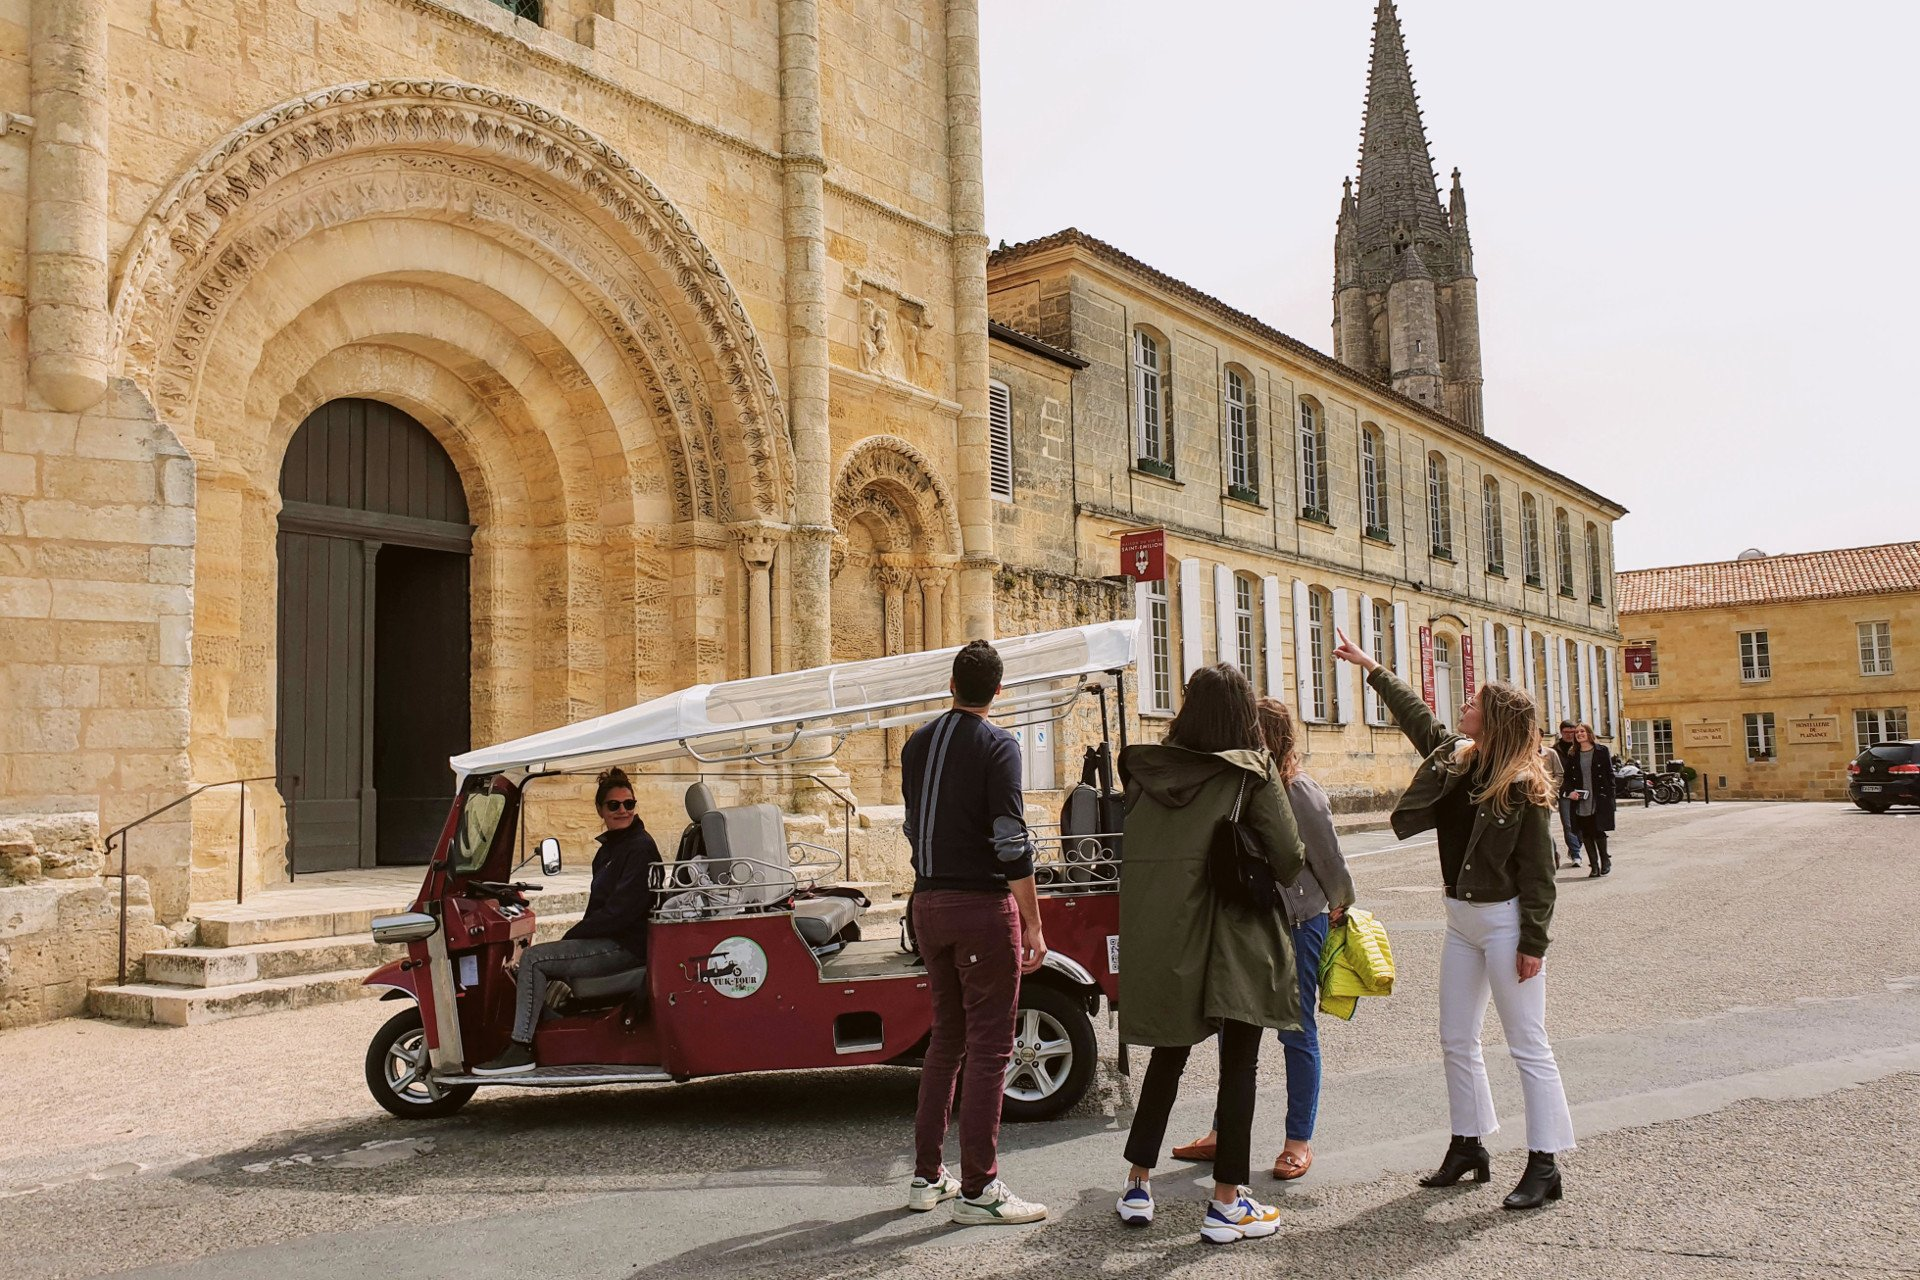 The e-tuktuk and his passengers in front of Saint Emilion historical building